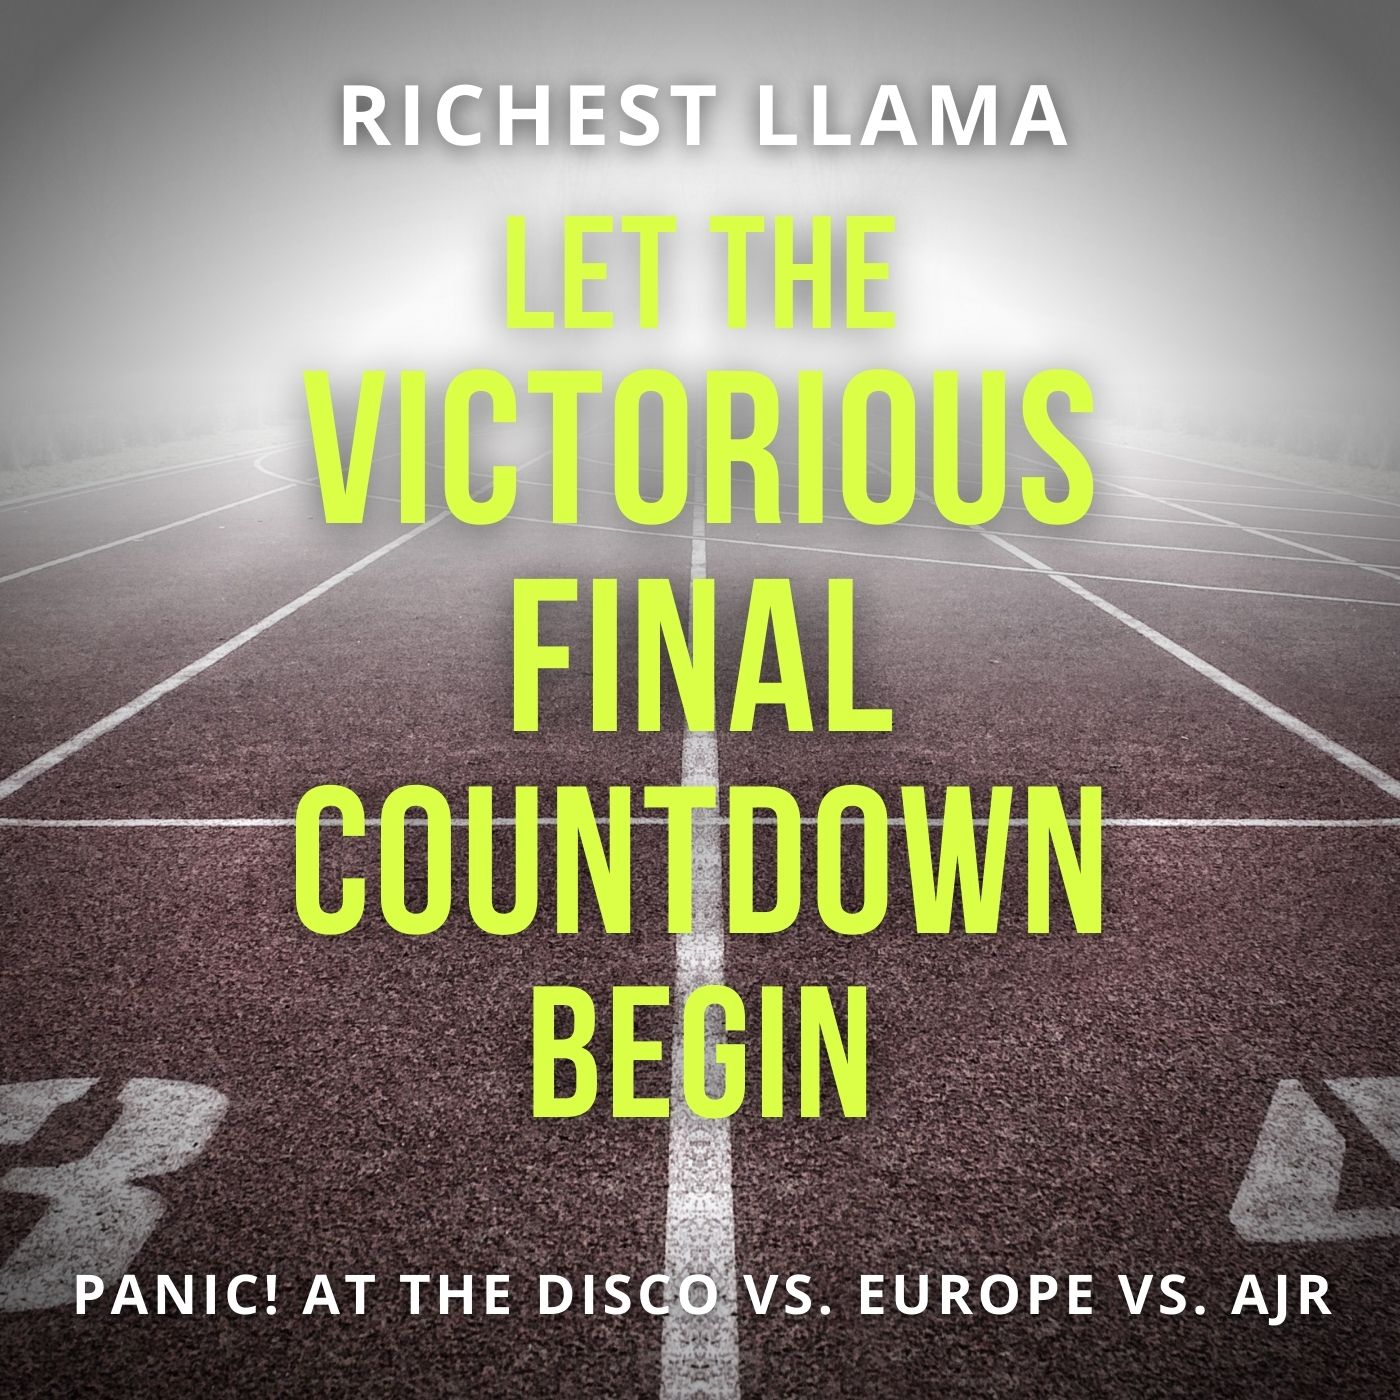 Let the Victorious Final Countdown Begin (Panic! at the Disco vs. Europe vs. AJR)